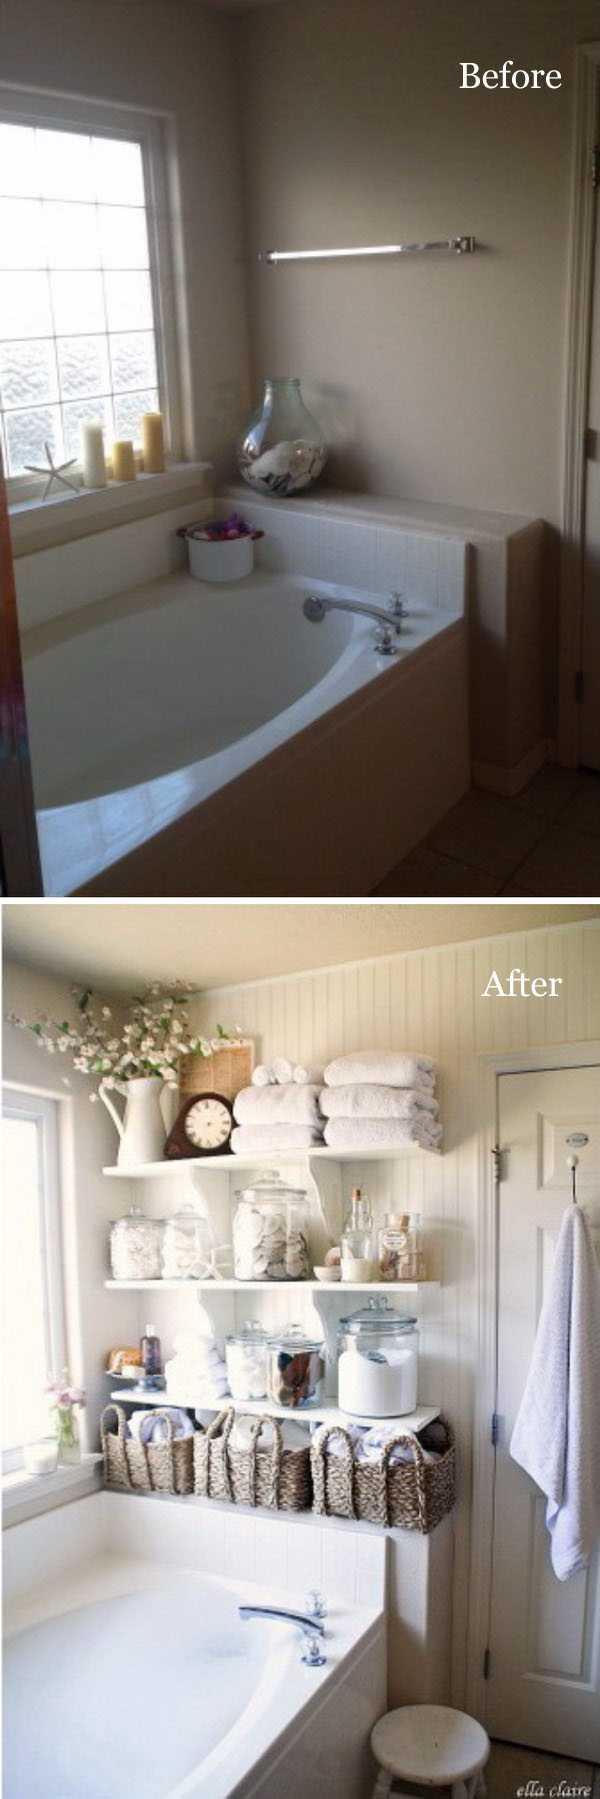 58-bathroom-remodel-before-and-after